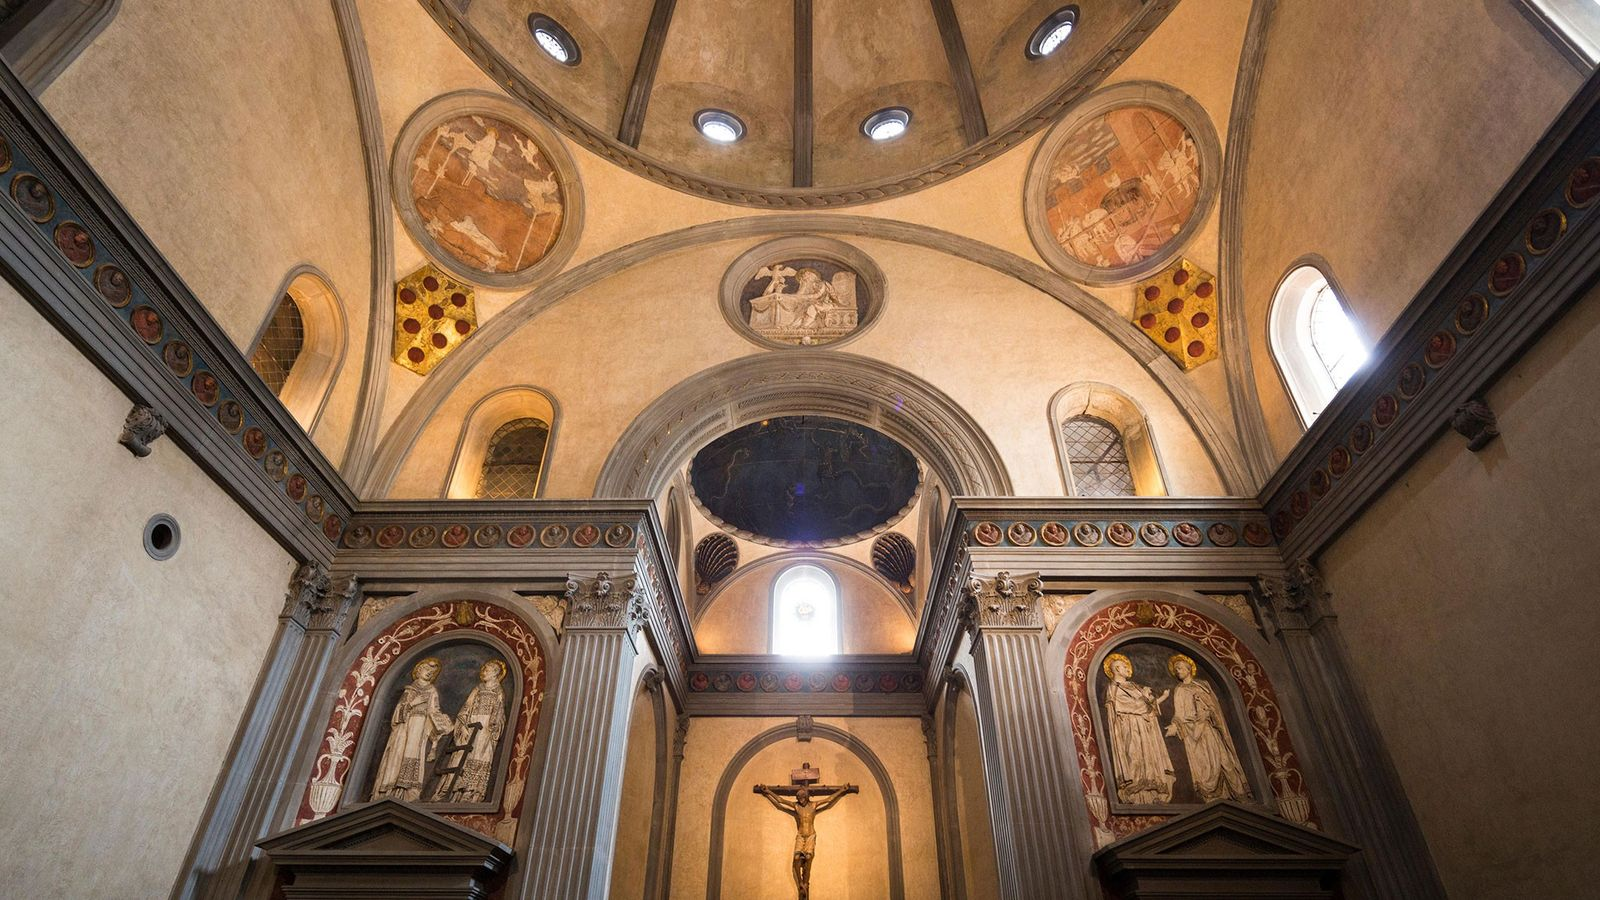 The Medici remains were interred in Sagrestia Vecchia, also known as Old Sacristy, Basilica of San ...